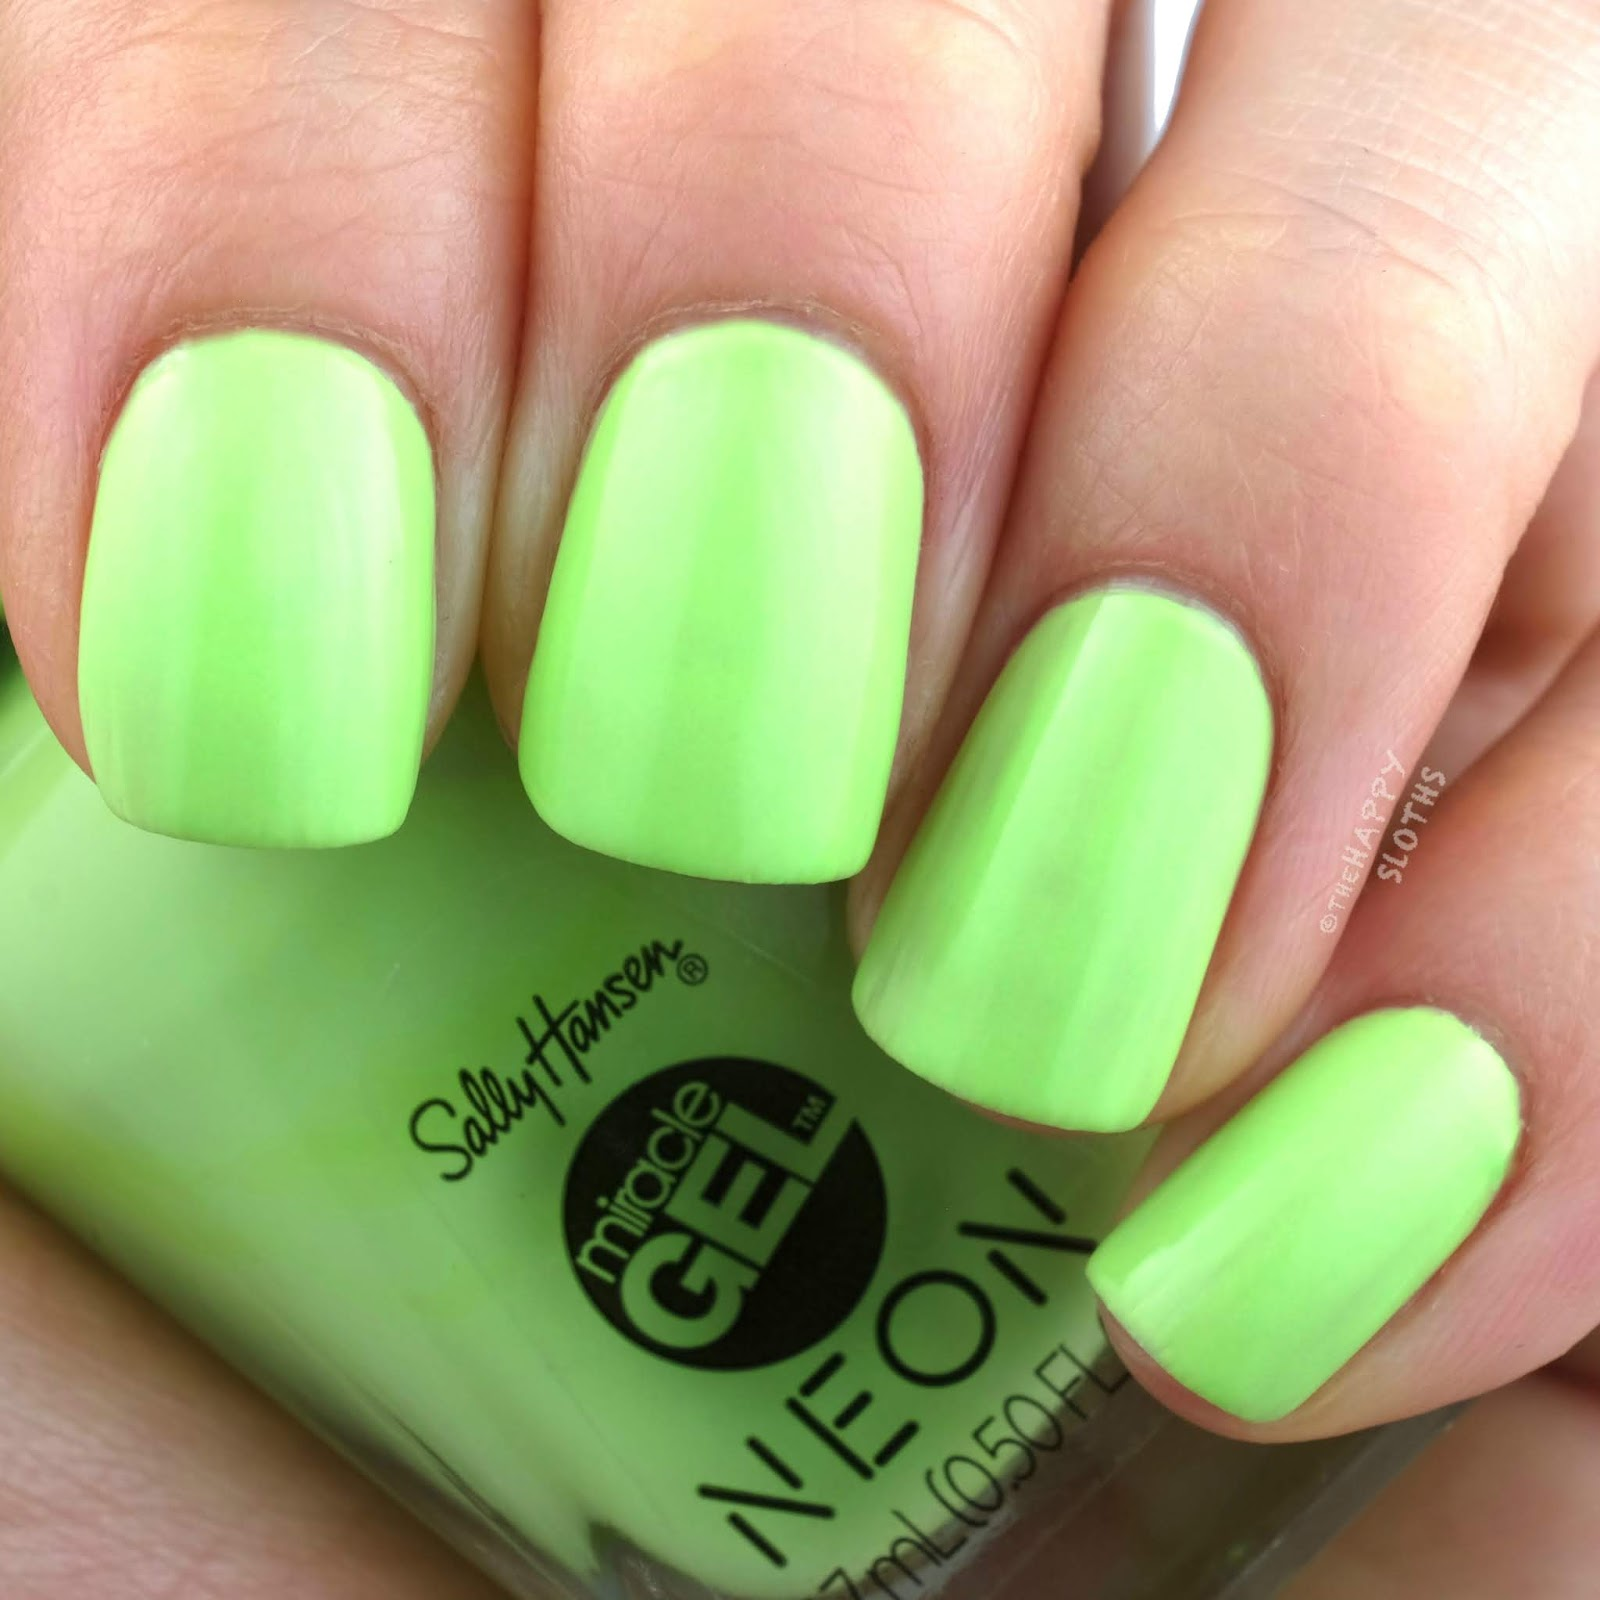 Sally Hansen | Miracle Gel Summer 2019 Neon Collection | Electri-lime: Review and Swatches